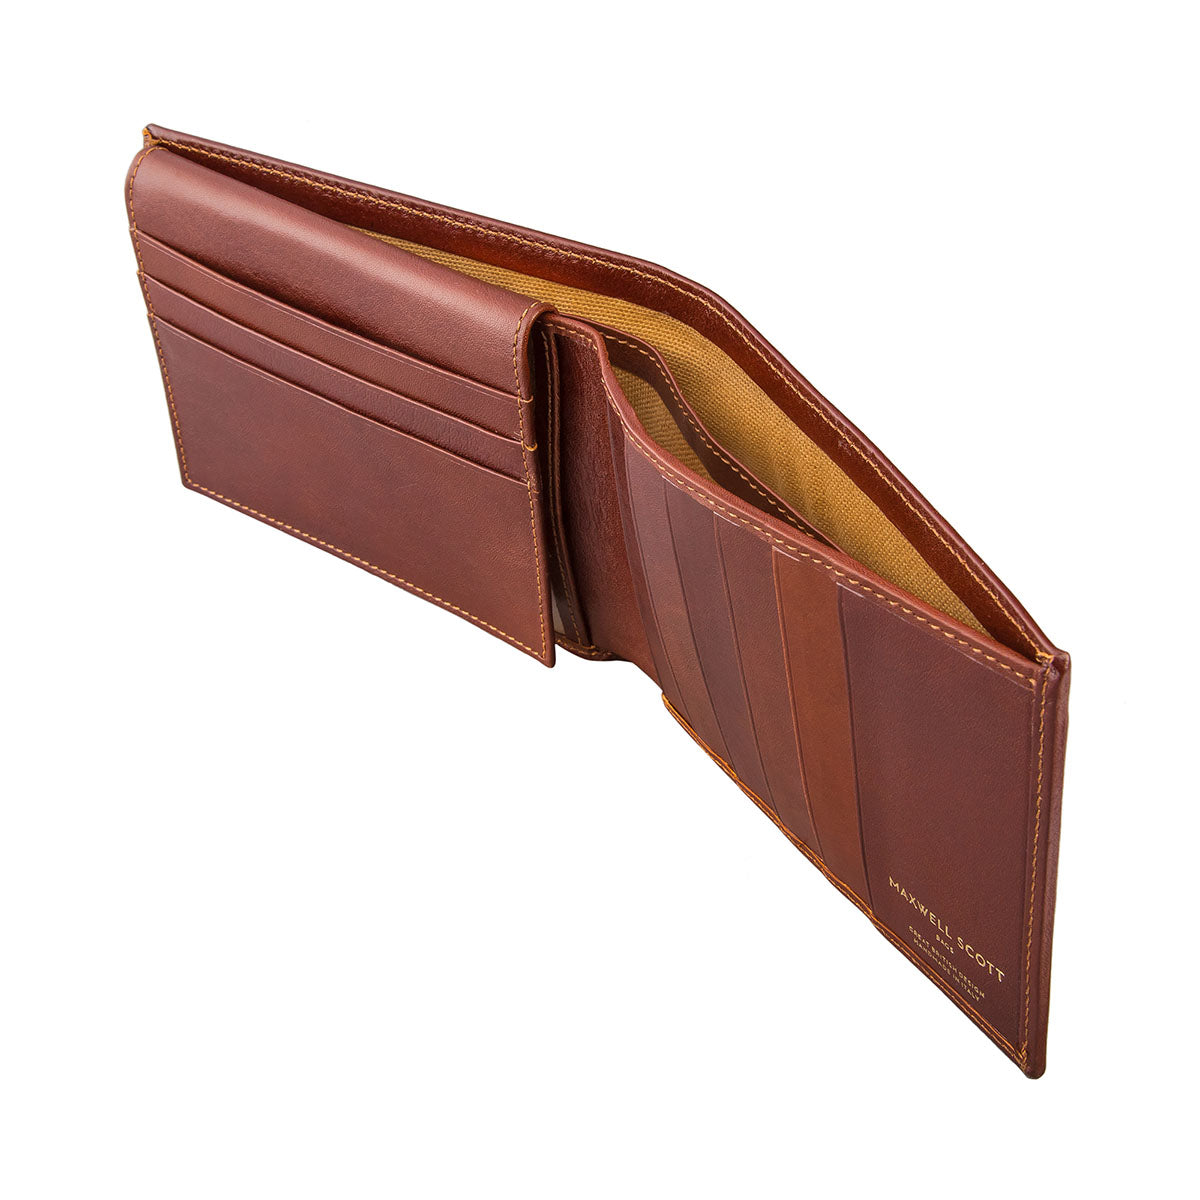 Image 4 of the 'Gallucio' Chestnut Veg-Tanned Leather Tri Fold Credit Card Wallet